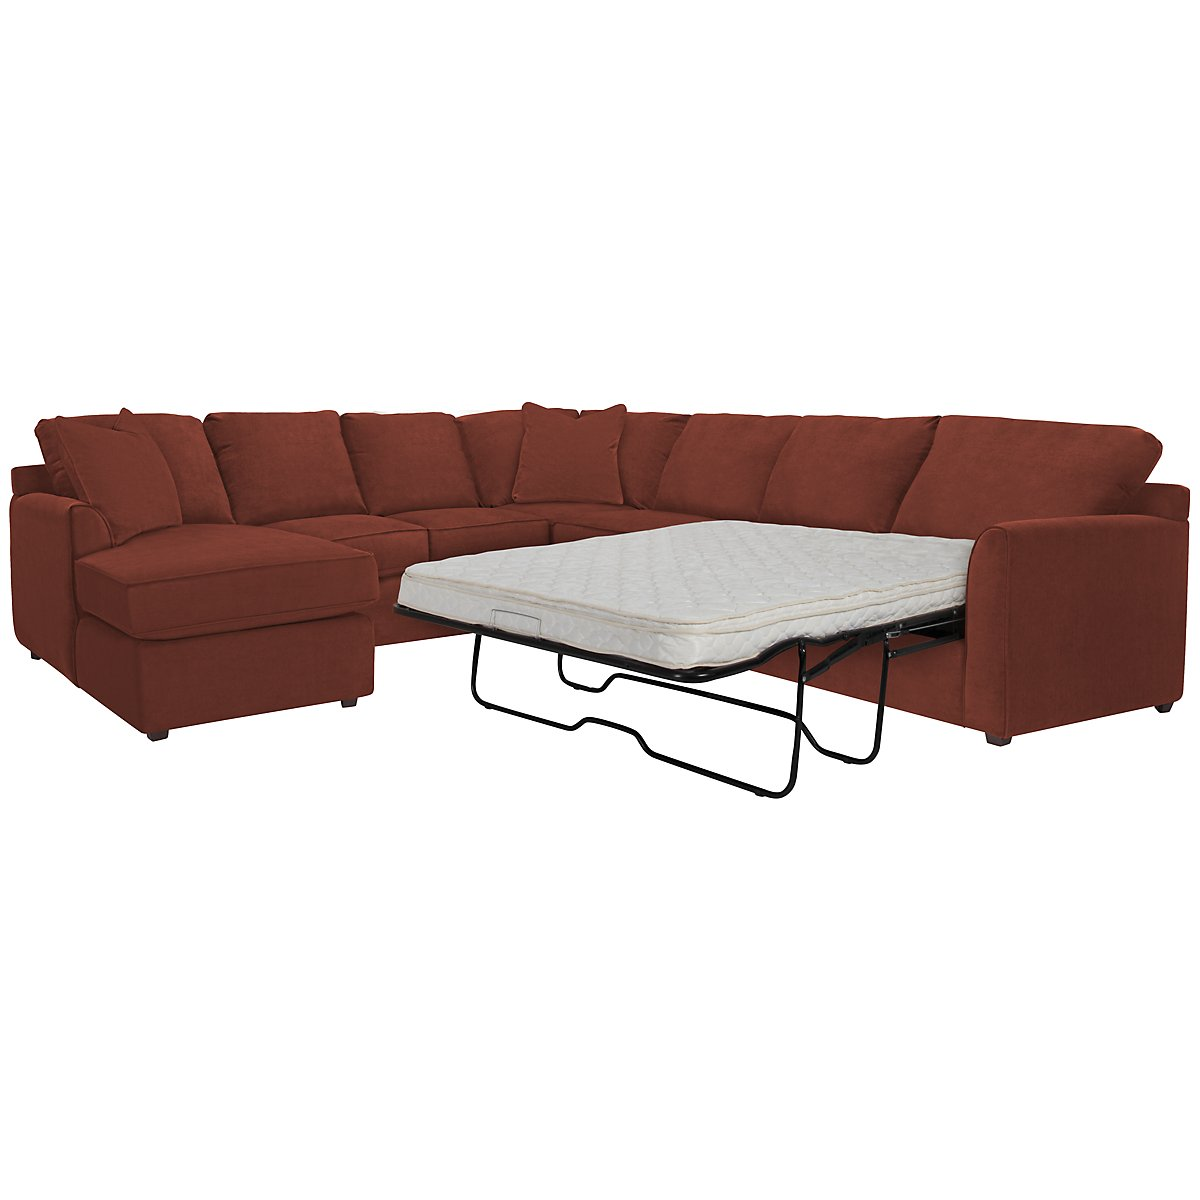 Express3 Red Microfiber Left Chaise Innerspring Sleeper Sectional